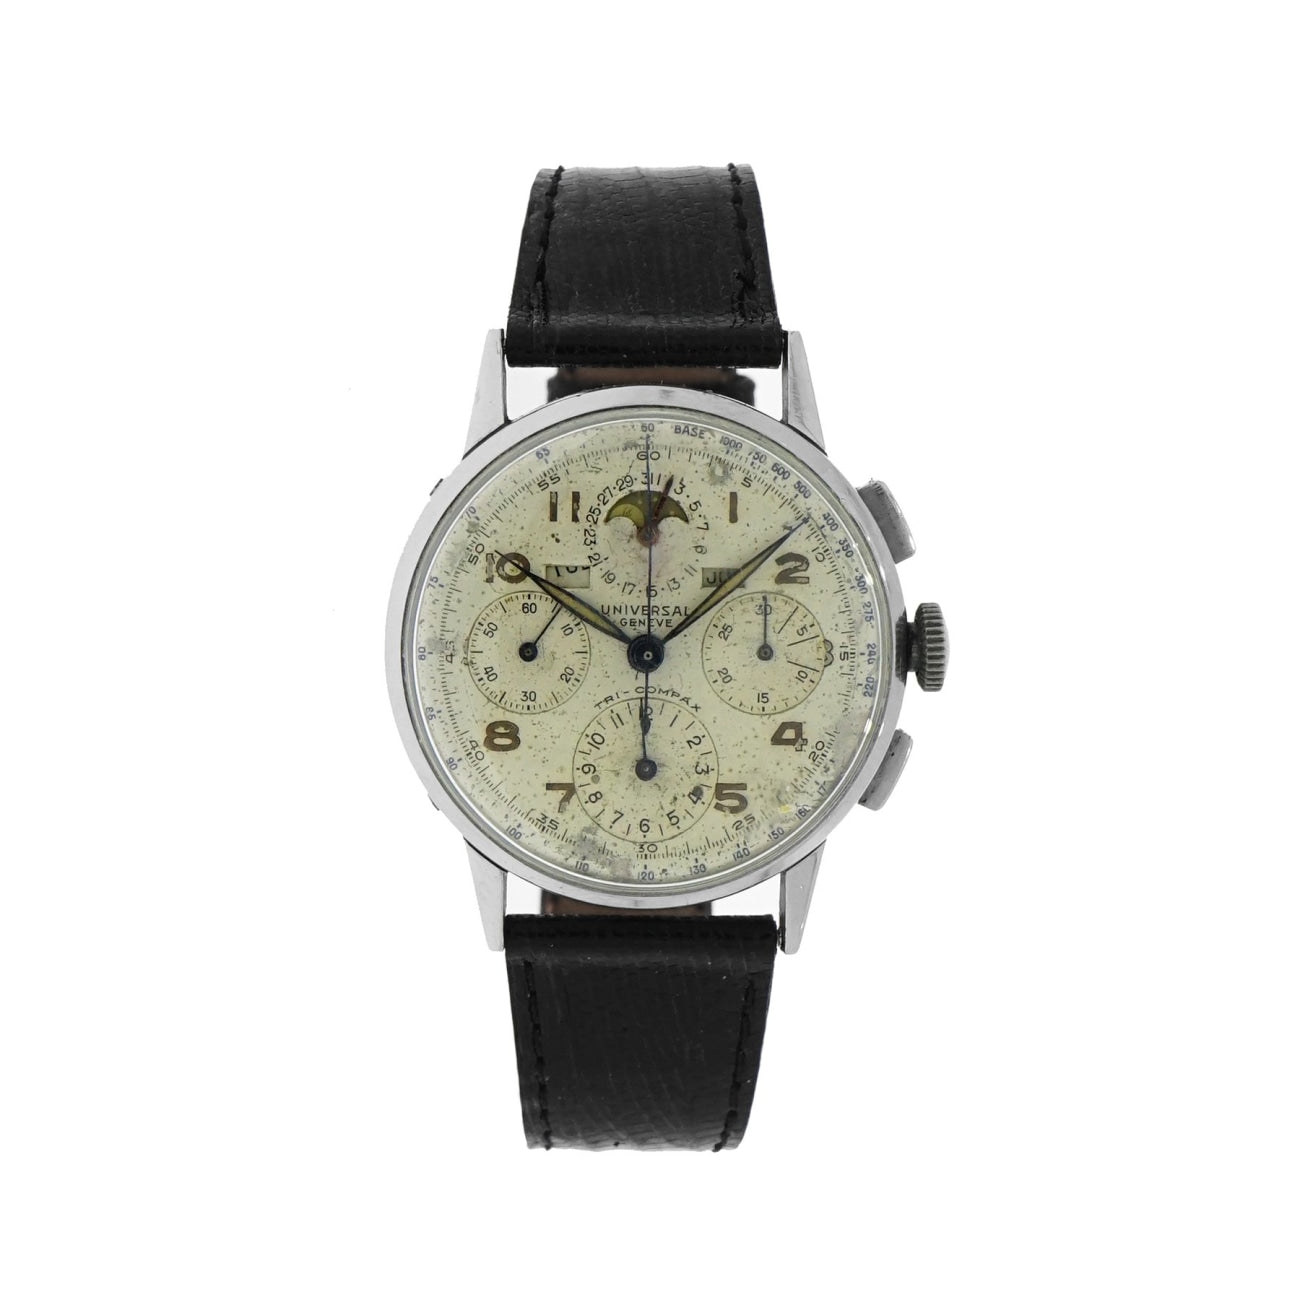 Pre-Owned Universal Geneve Watches - Tripple Date Moonphase Chronograph | Manfredi Jewels